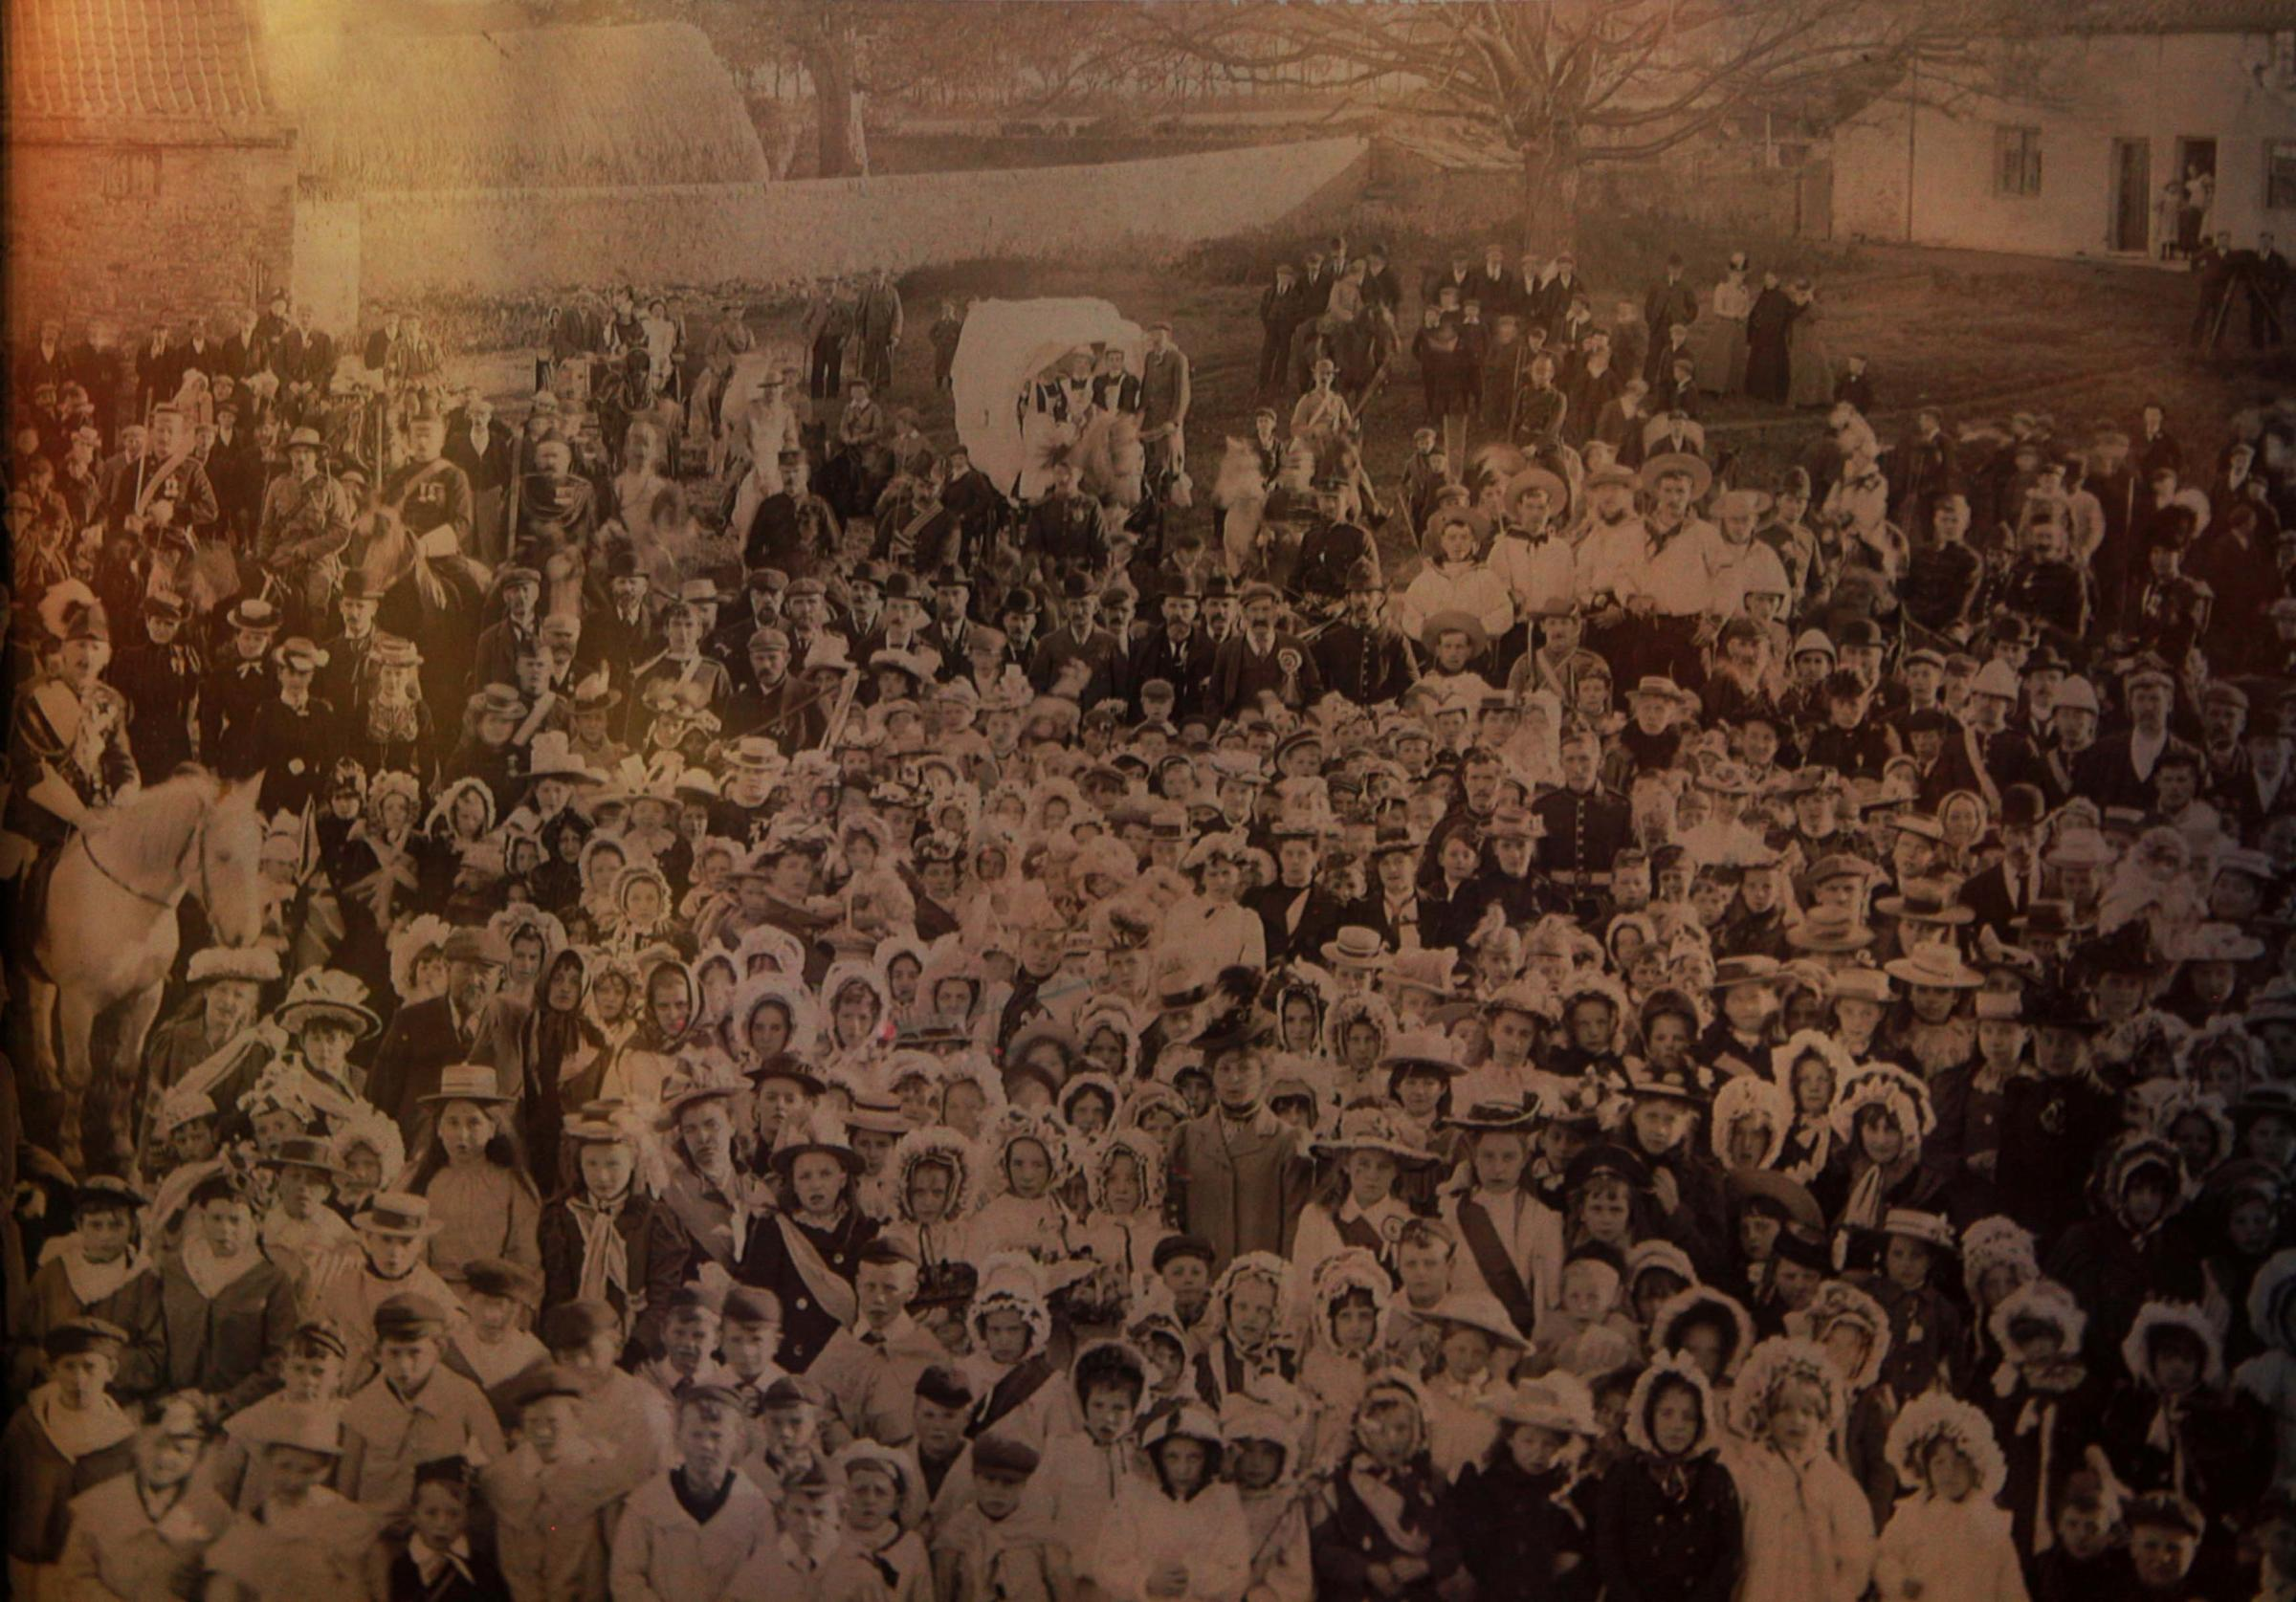 History is repeated in Hunwick when villages recreate 1900 photograph